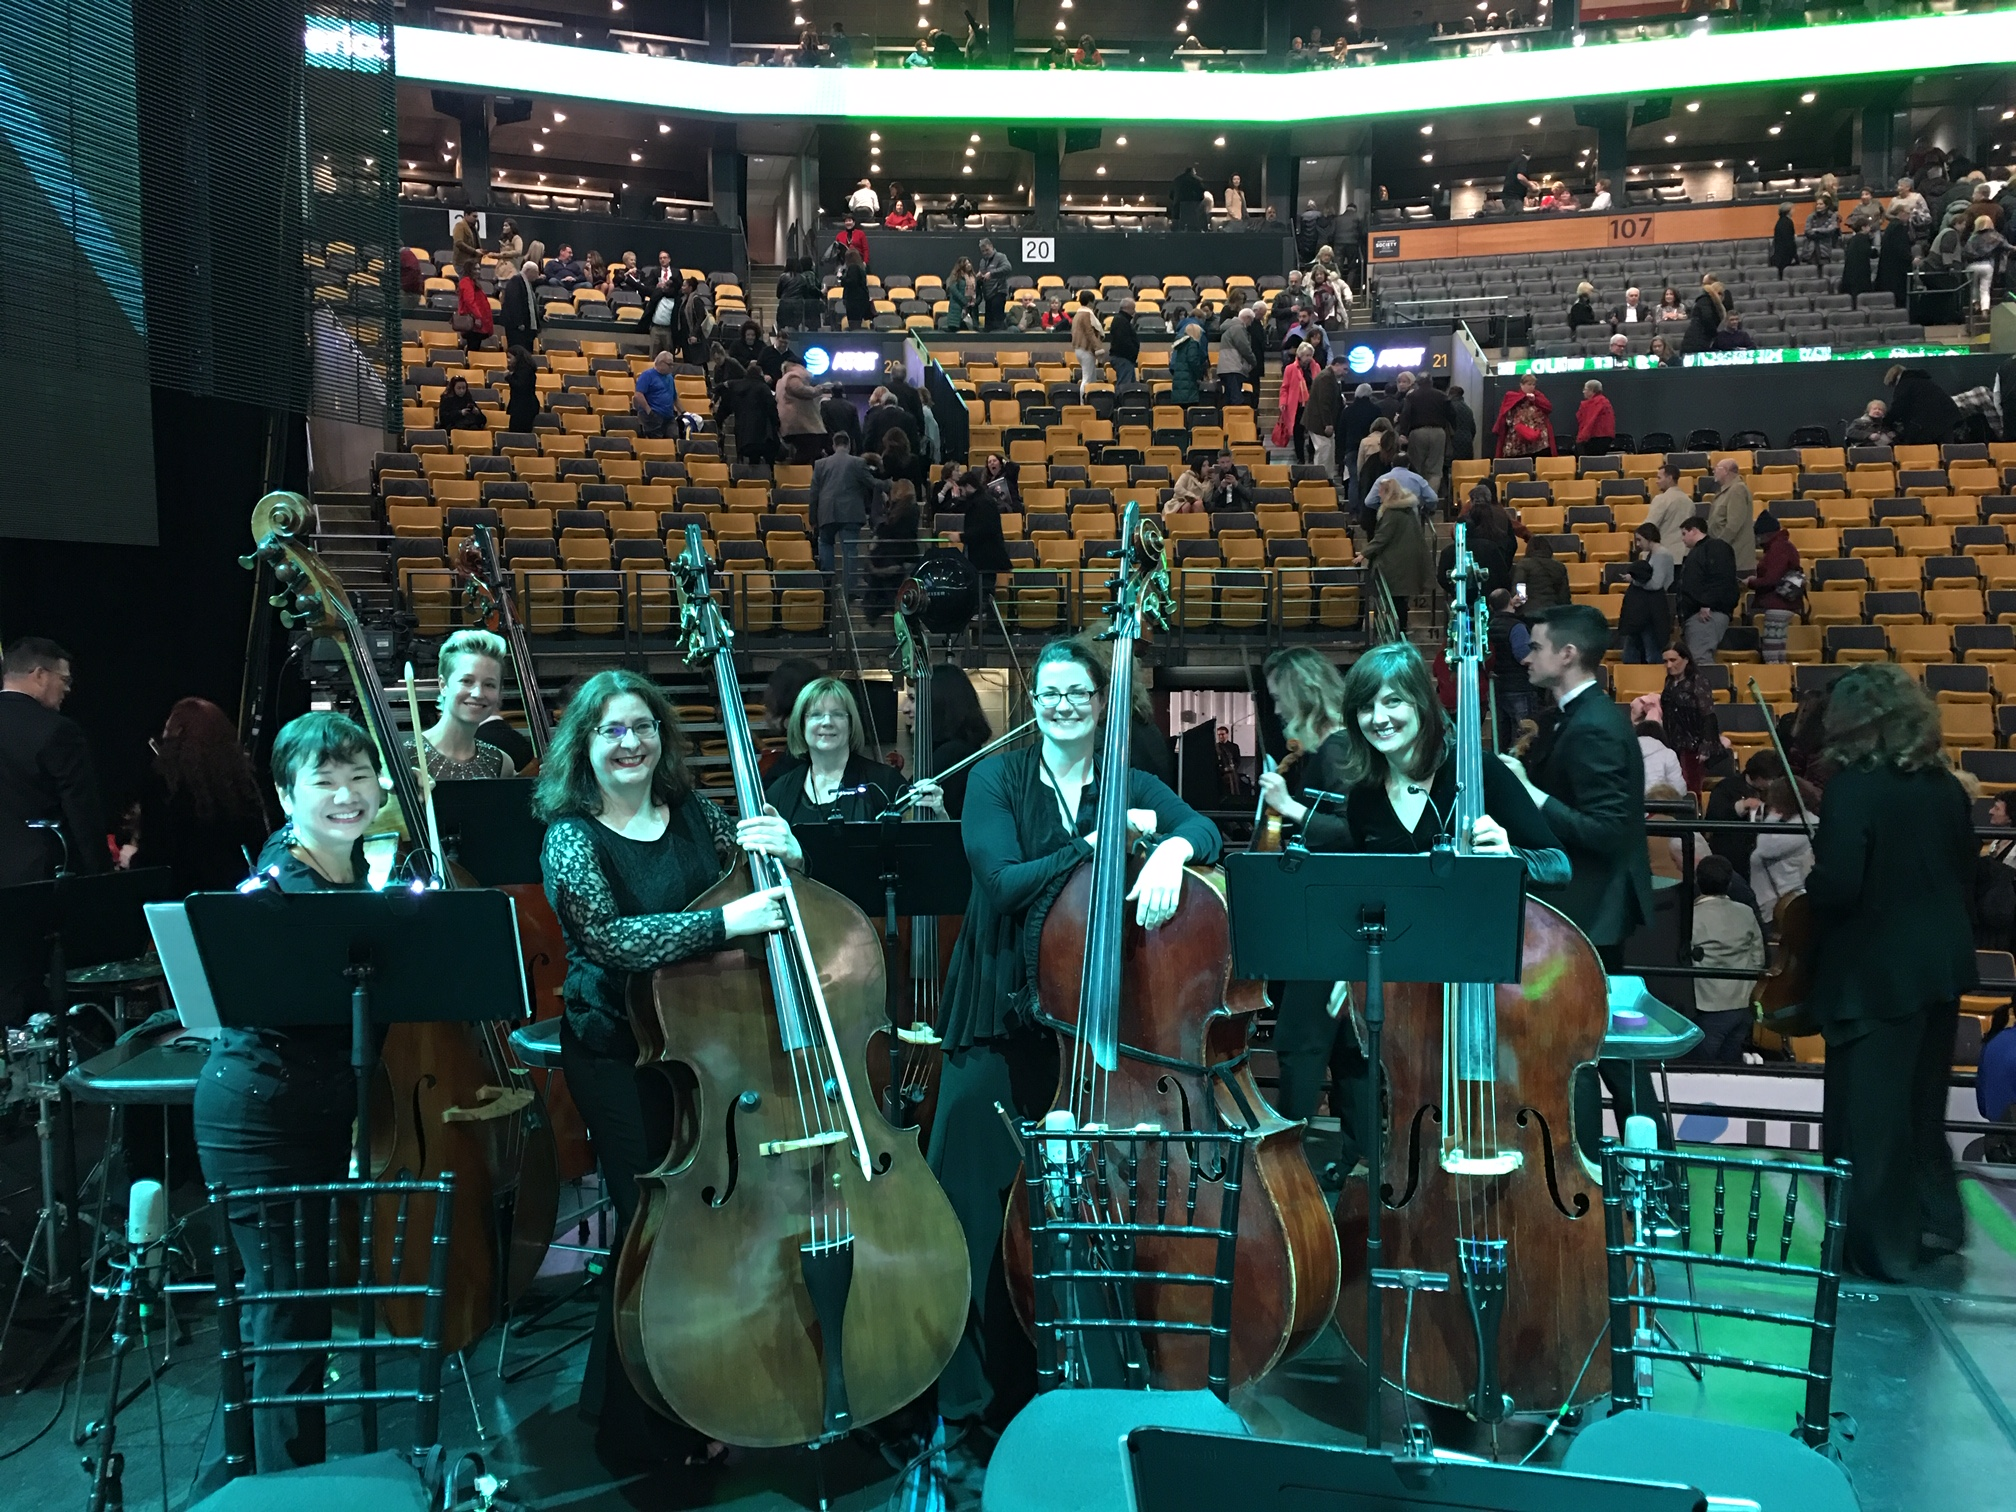 """Andrea Bocelli """"Boston Festival Orchestra"""" bass section (L-R): Carion Chu, me, Pascale Delache, Kevin Ann Green, Julianne Russell, Colleen Ruddy"""